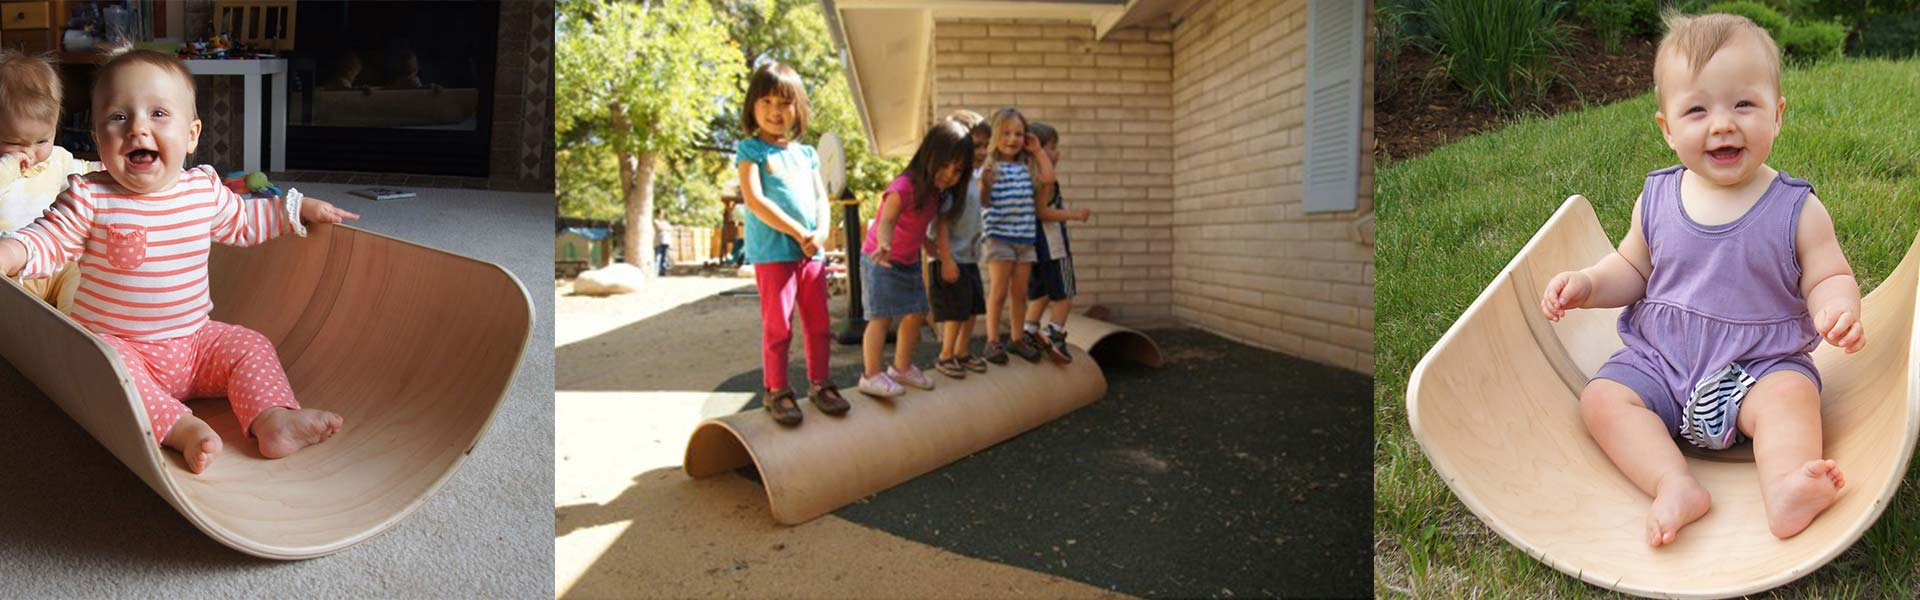 Children using a rotary die board in their playtime